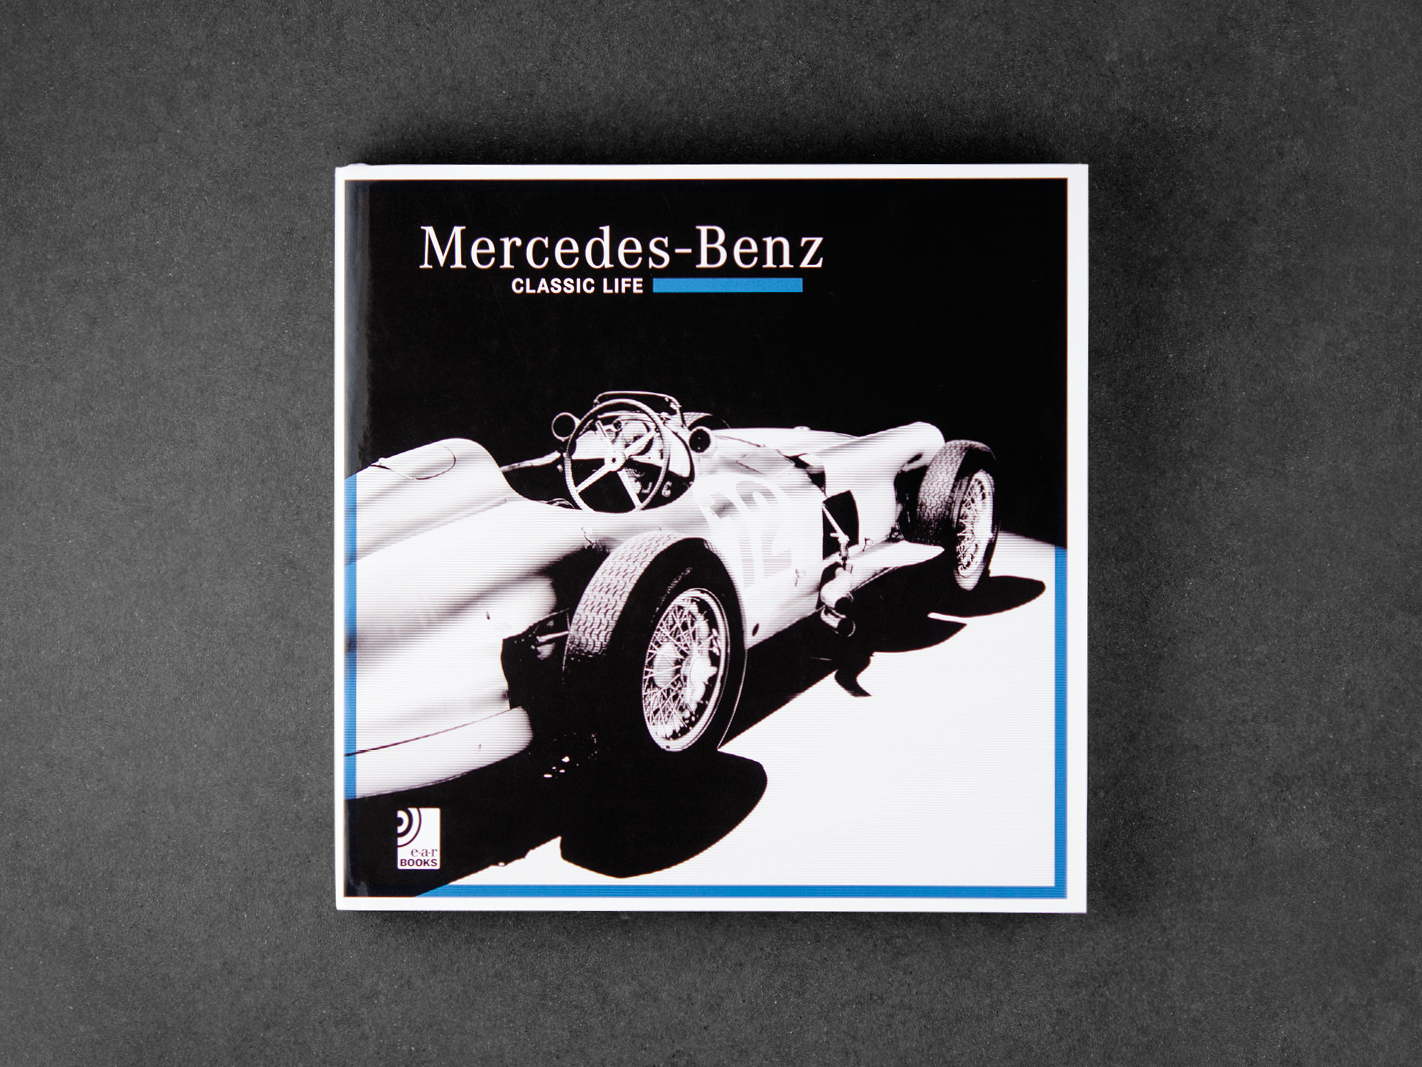 MB Classic Reproshot Hardcover